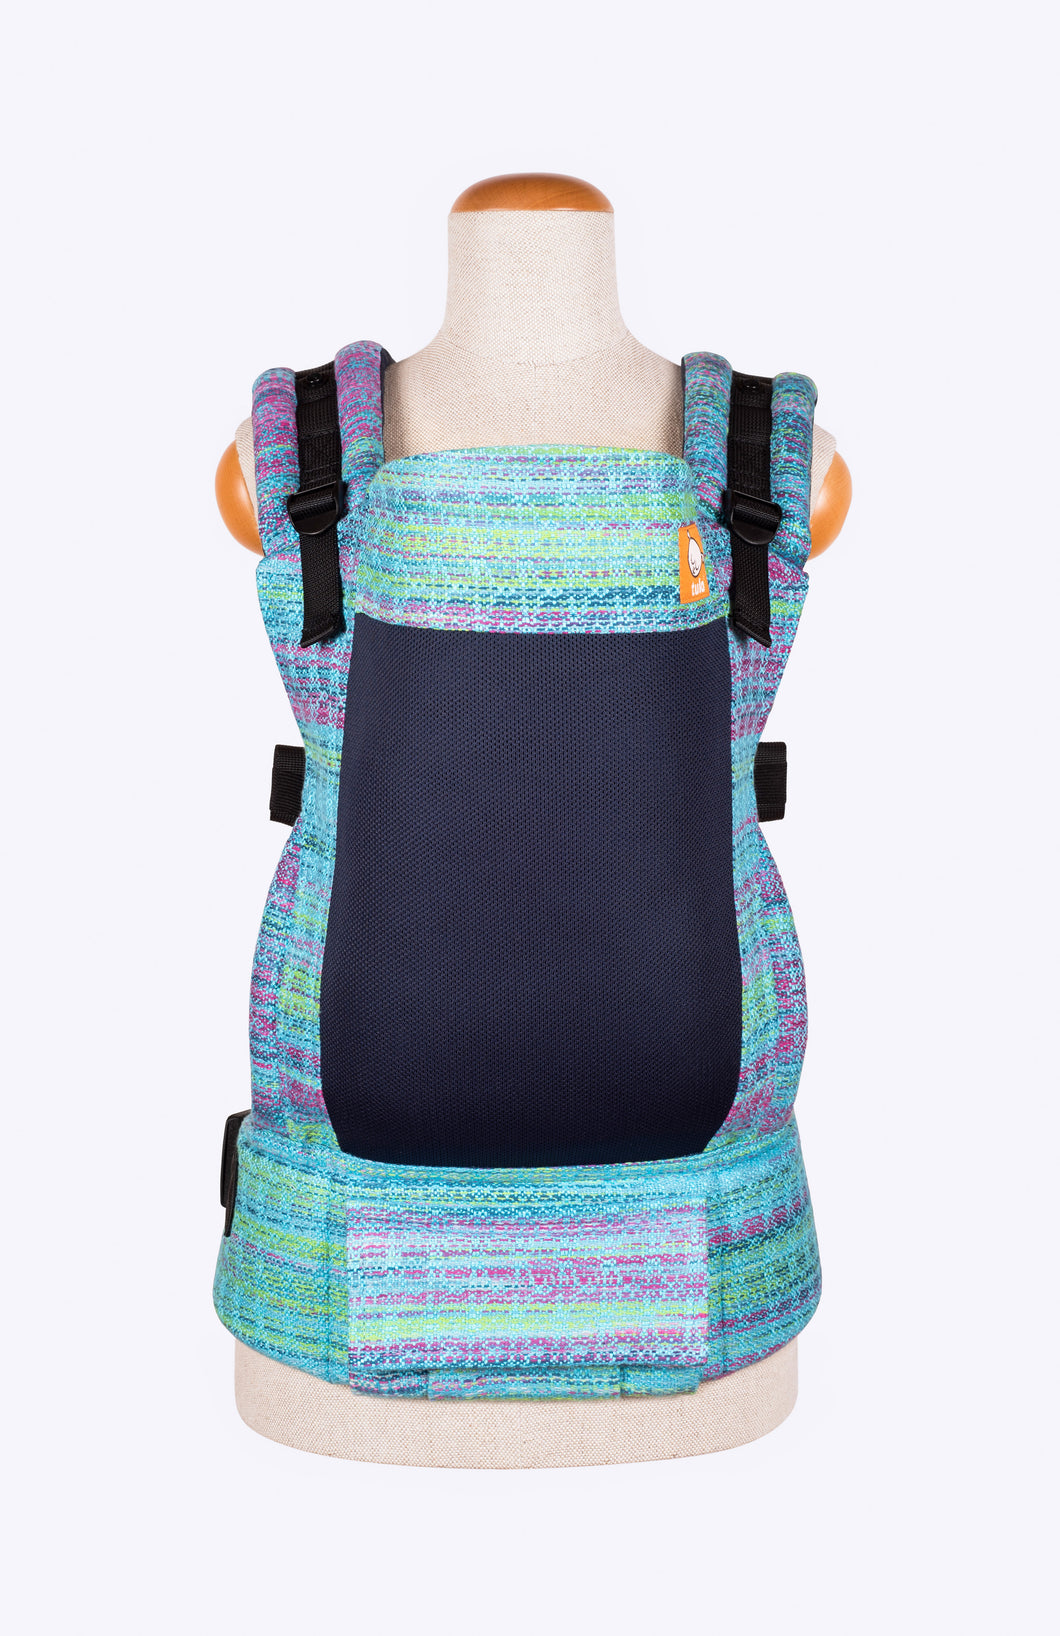 Coast Ljhandwovens Wildflower Turquoise - Tula Signature Baby Carrier